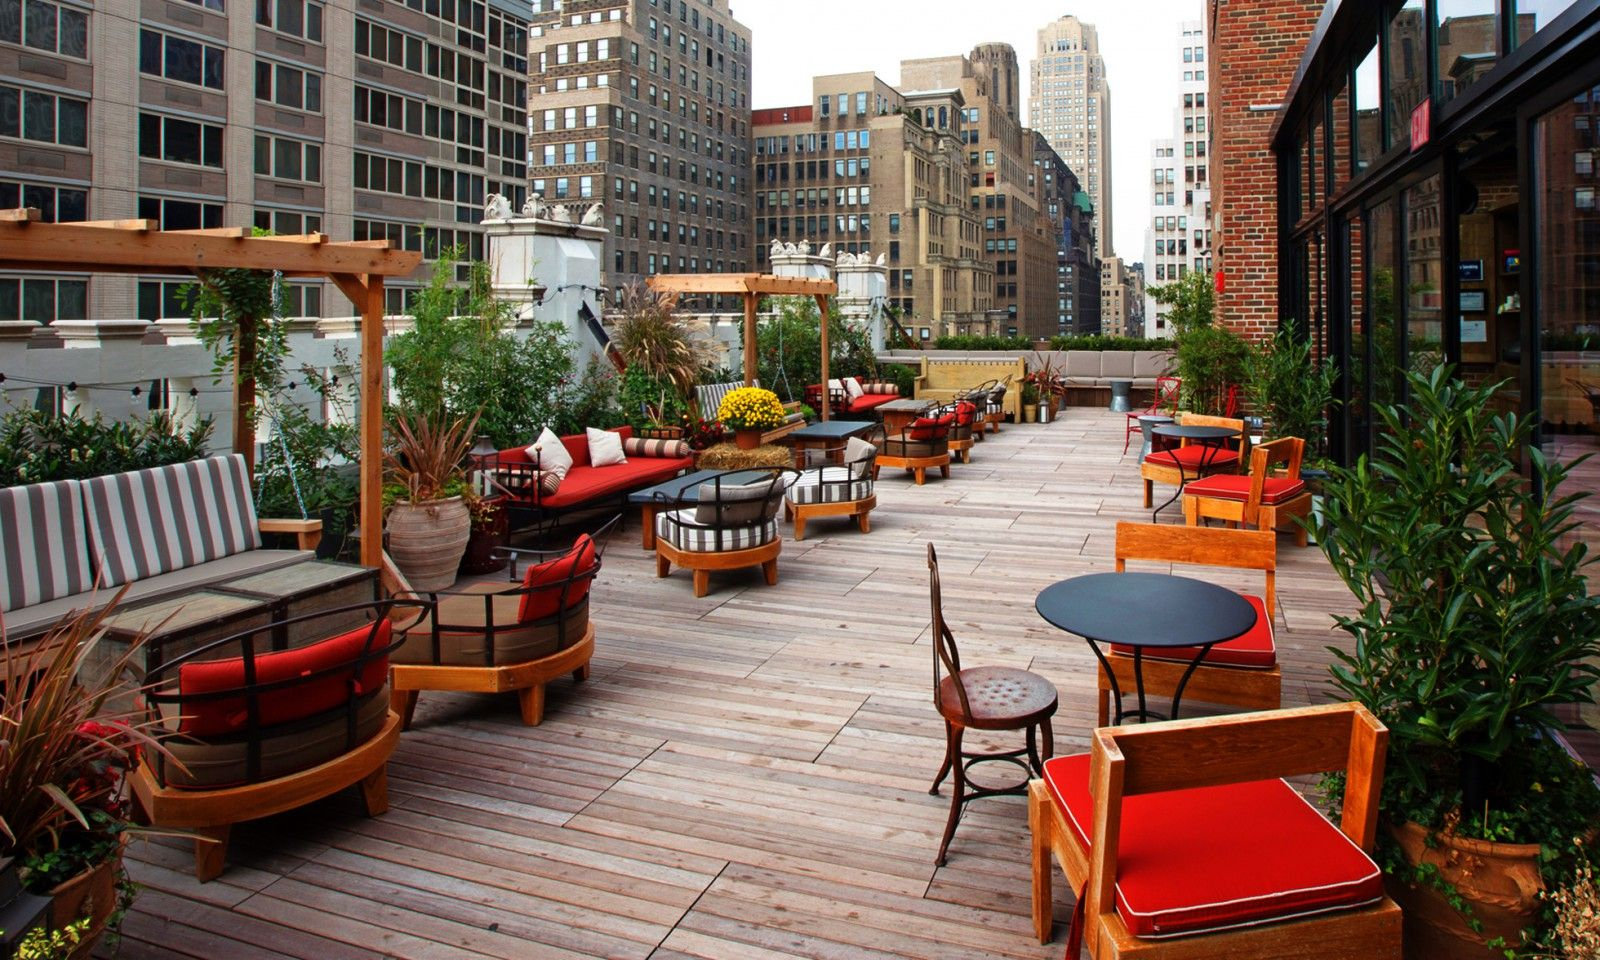 230 Fifth Rooftop Bar Outdoor Garden | Australia 2015 | Pinterest | Rooftop